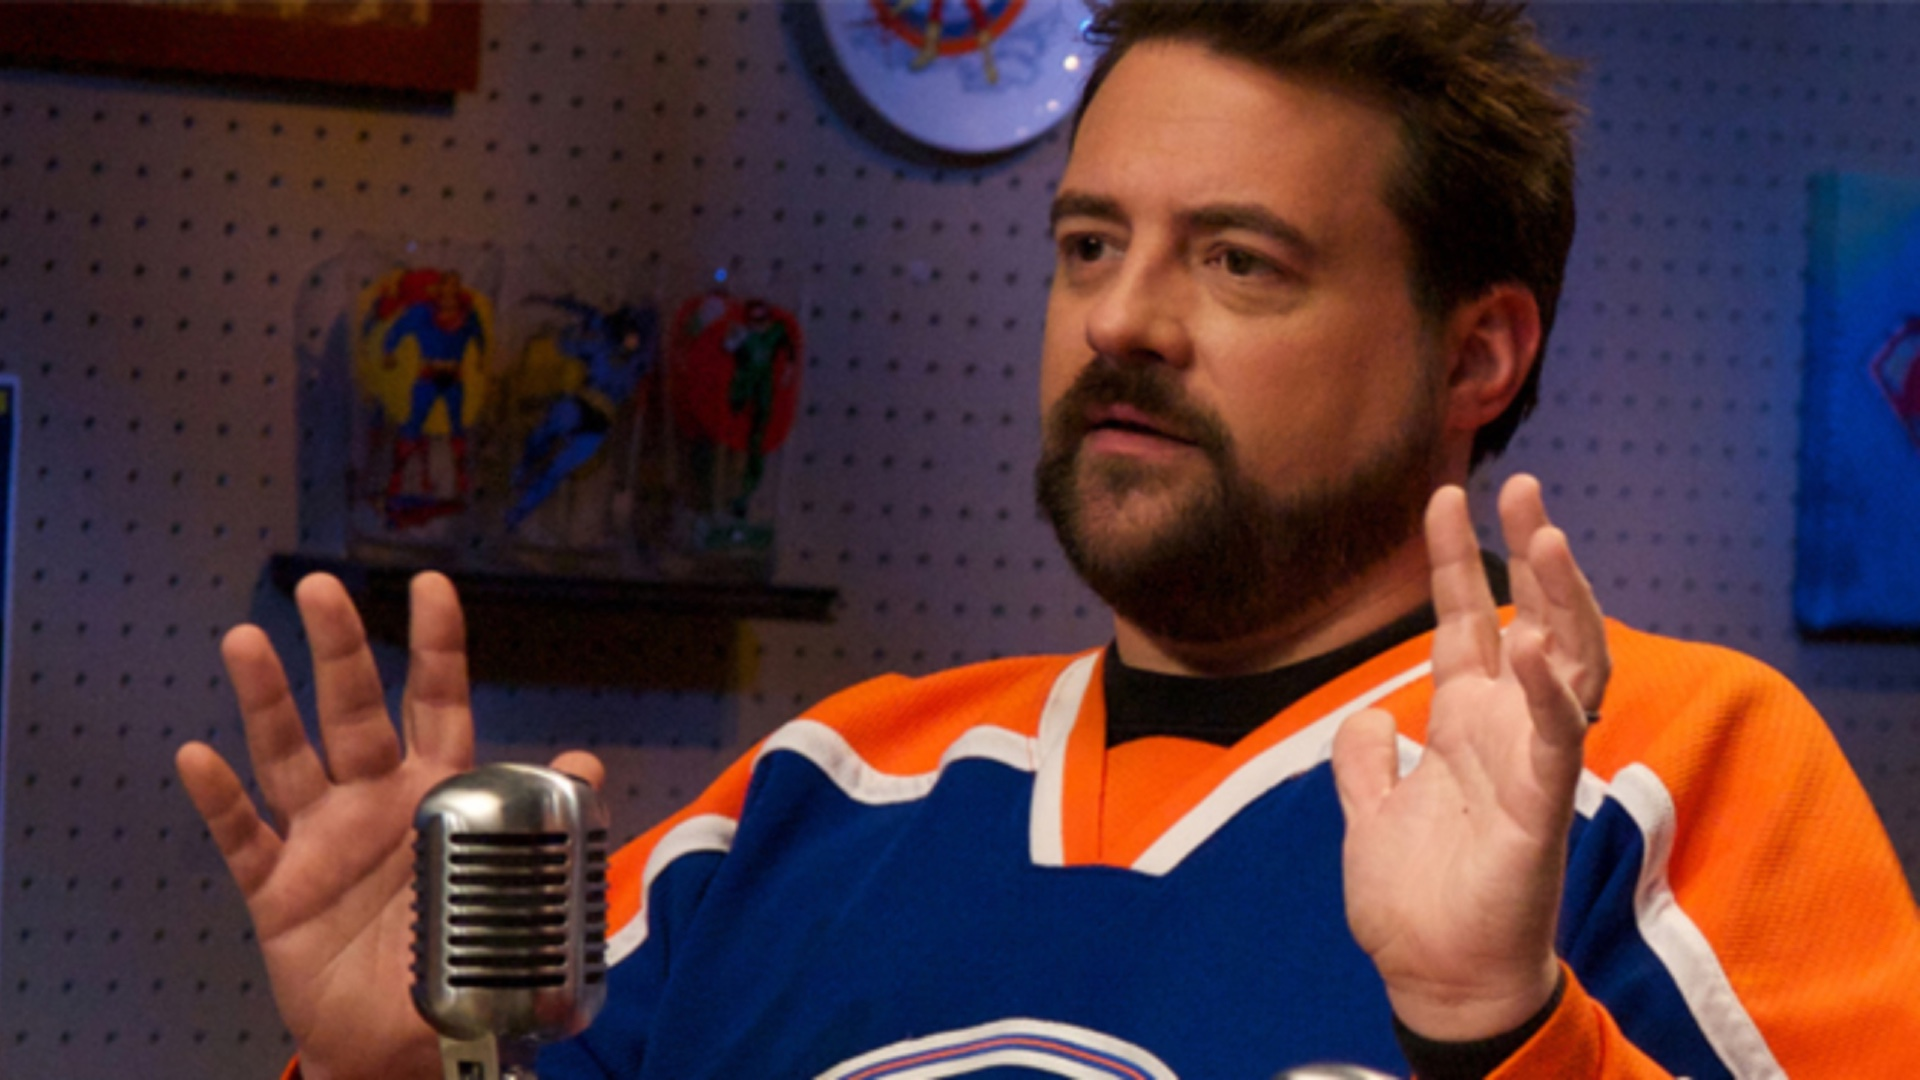 kevin-smith-suffers-a-massive-heart-attack-and-he-says-he-almost-died-social.jpg